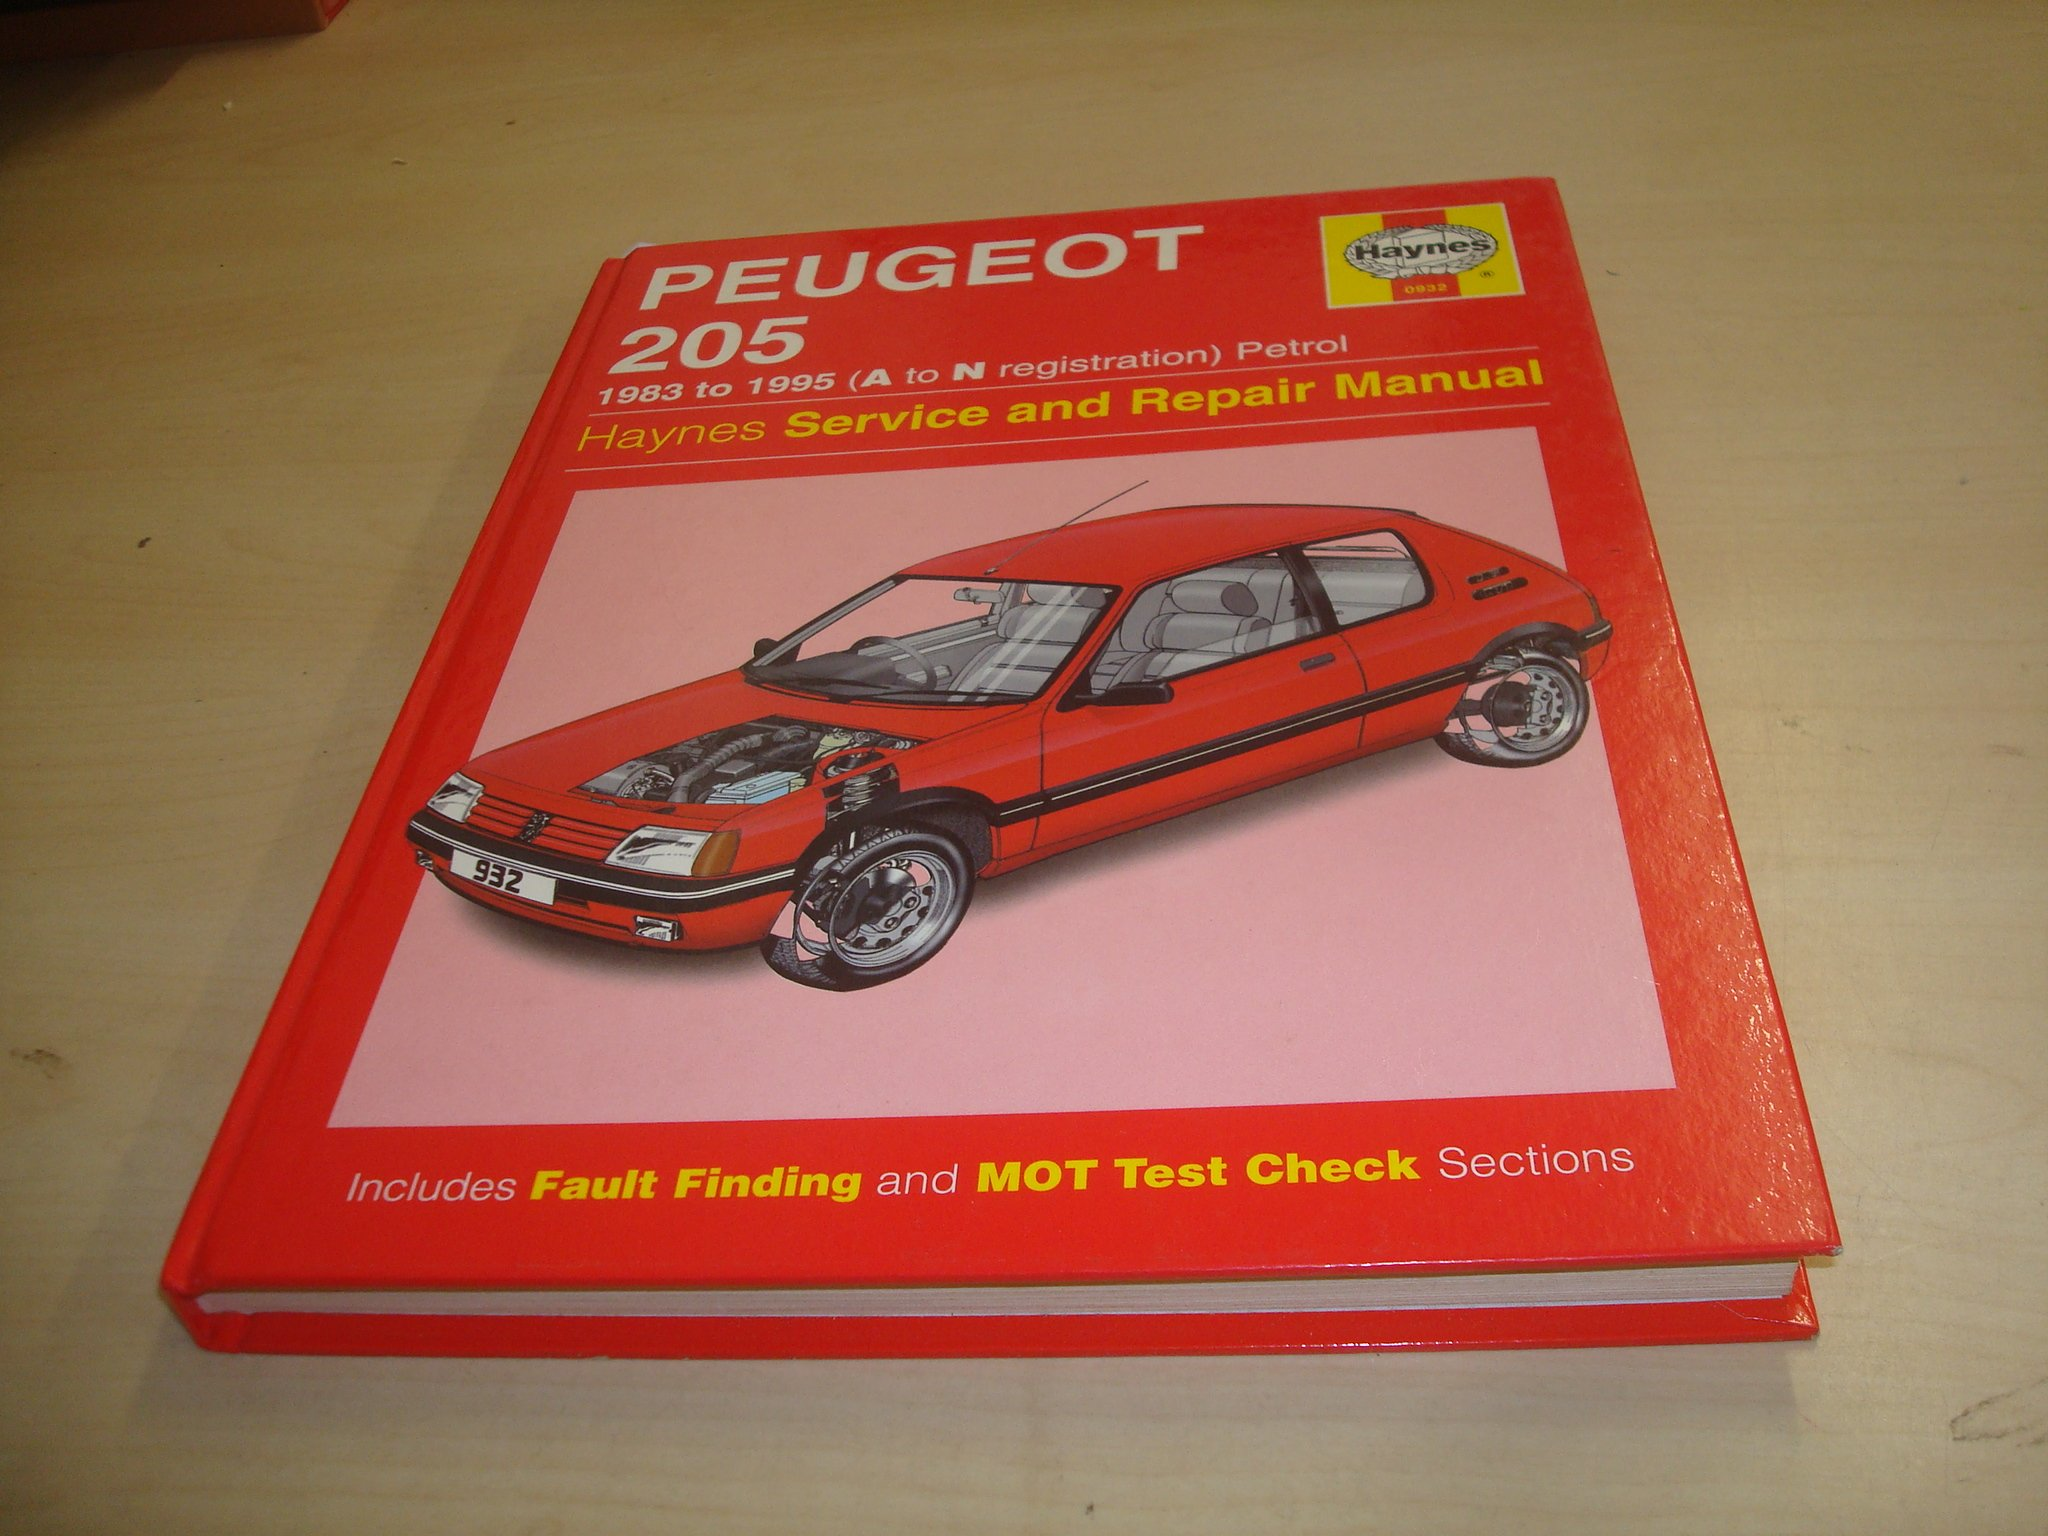 peugeot 205 service and repair manual 1983 to 1995 a to n rh amazon co uk haynes peugeot 205 service and repair manual pdf haynes peugeot 205 service and repair manual pdf